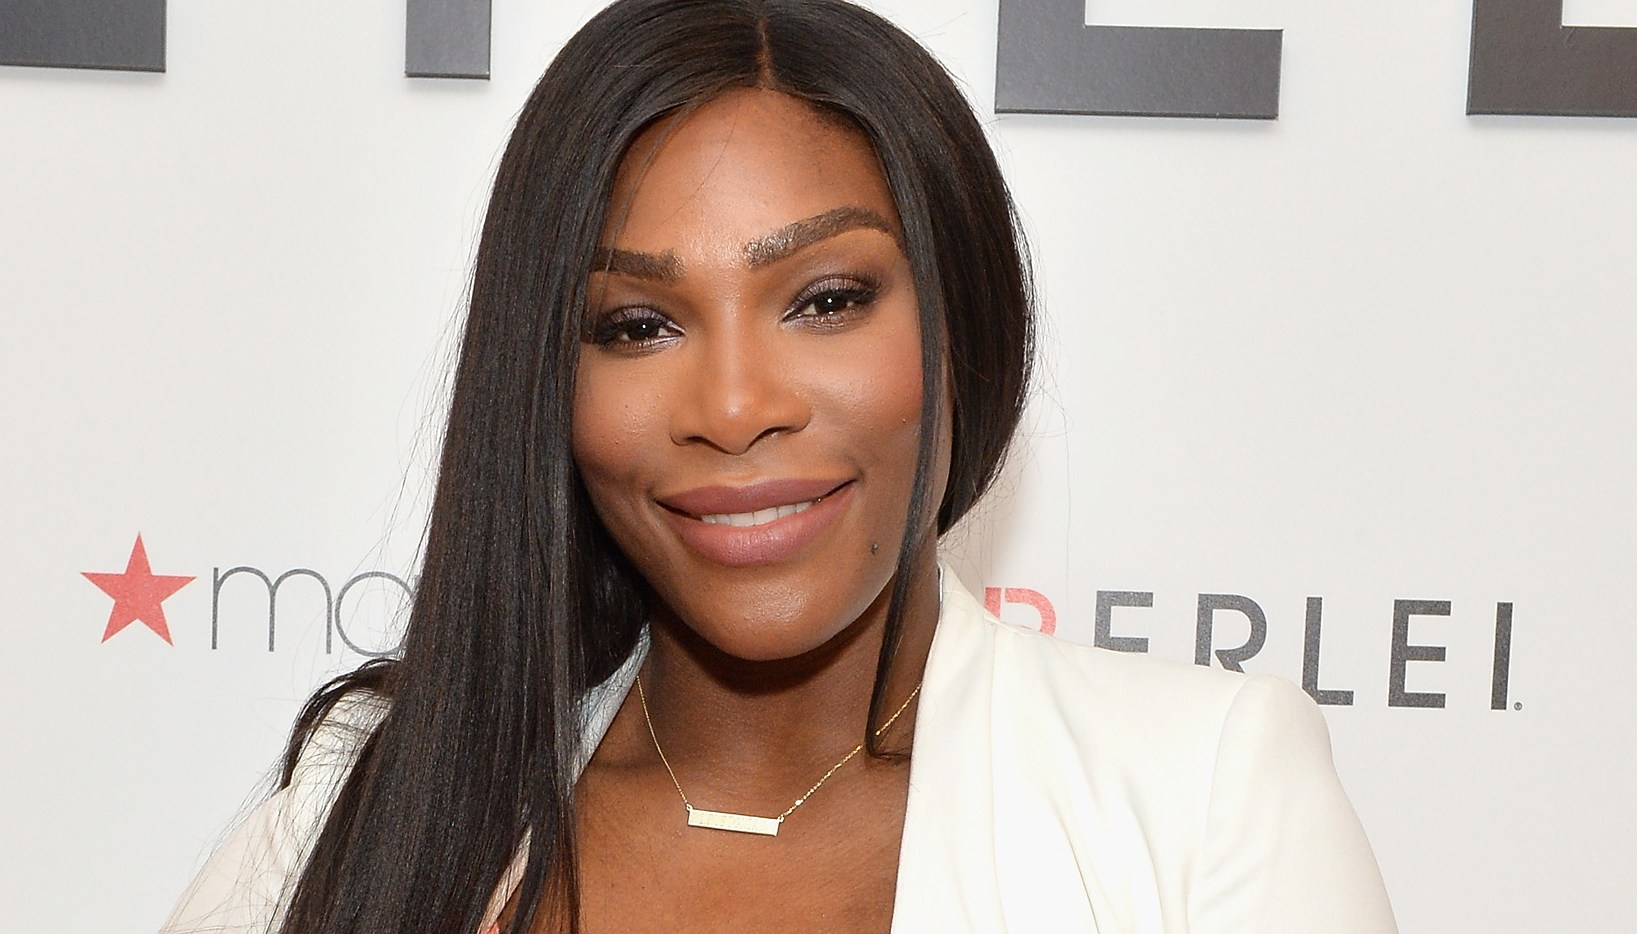 Berlei Sports Bras Launch At Macy's With Serena Williams